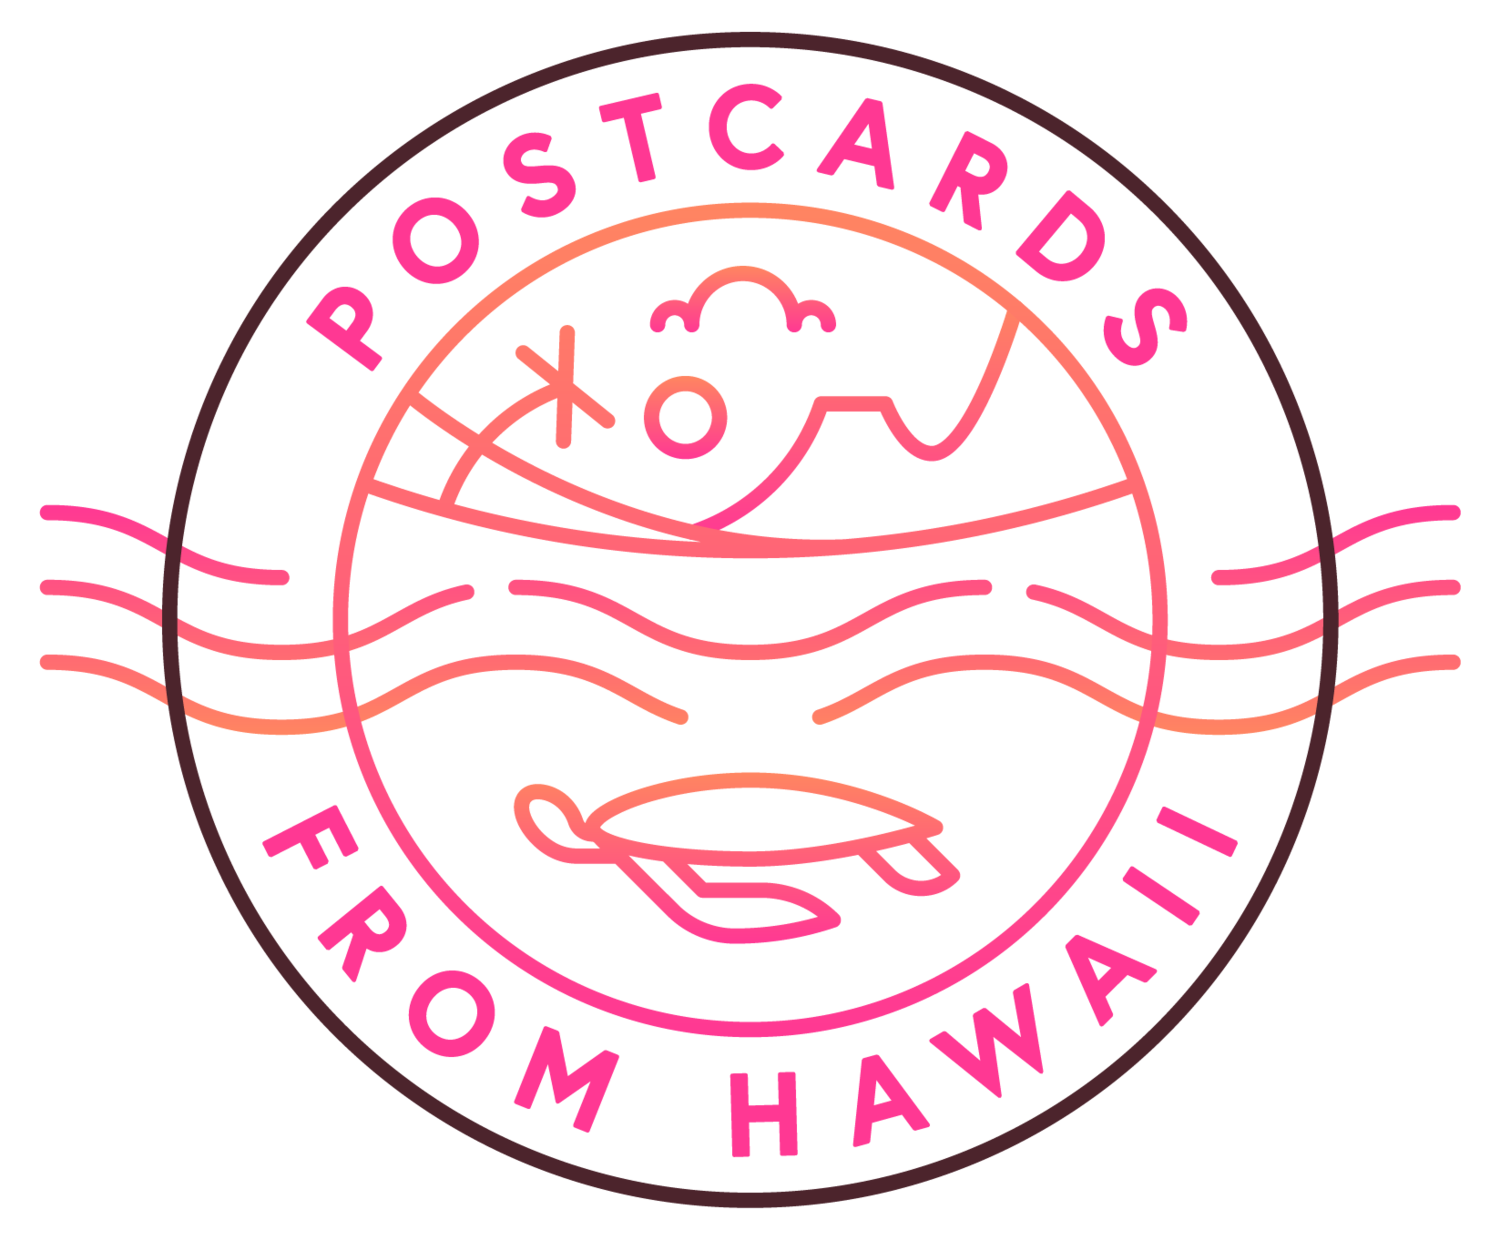 Postcard clipart postcard hawaii. Contact postcards from travel